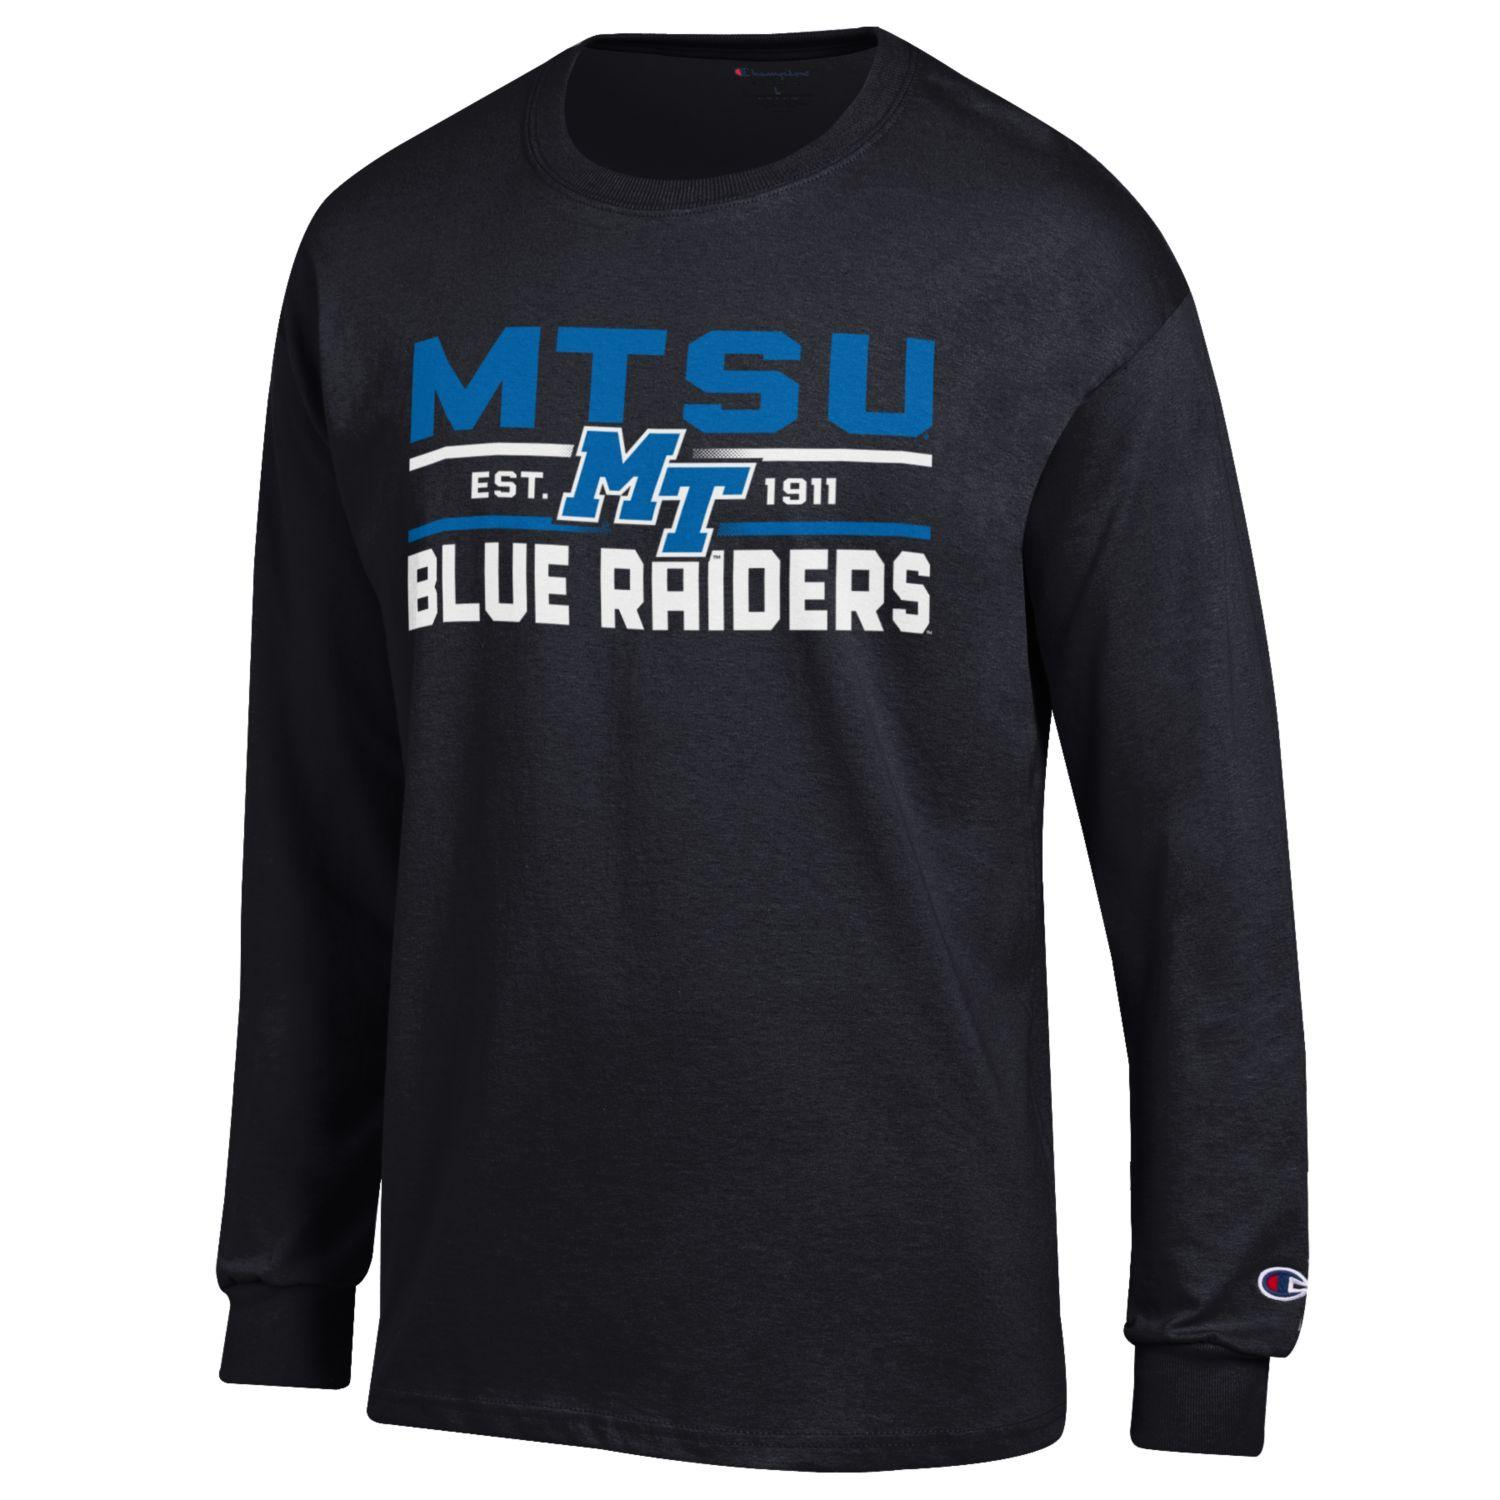 MTSU Blue Raiders Est. 1911 w/ MT Logo Long Sleeve Shirt